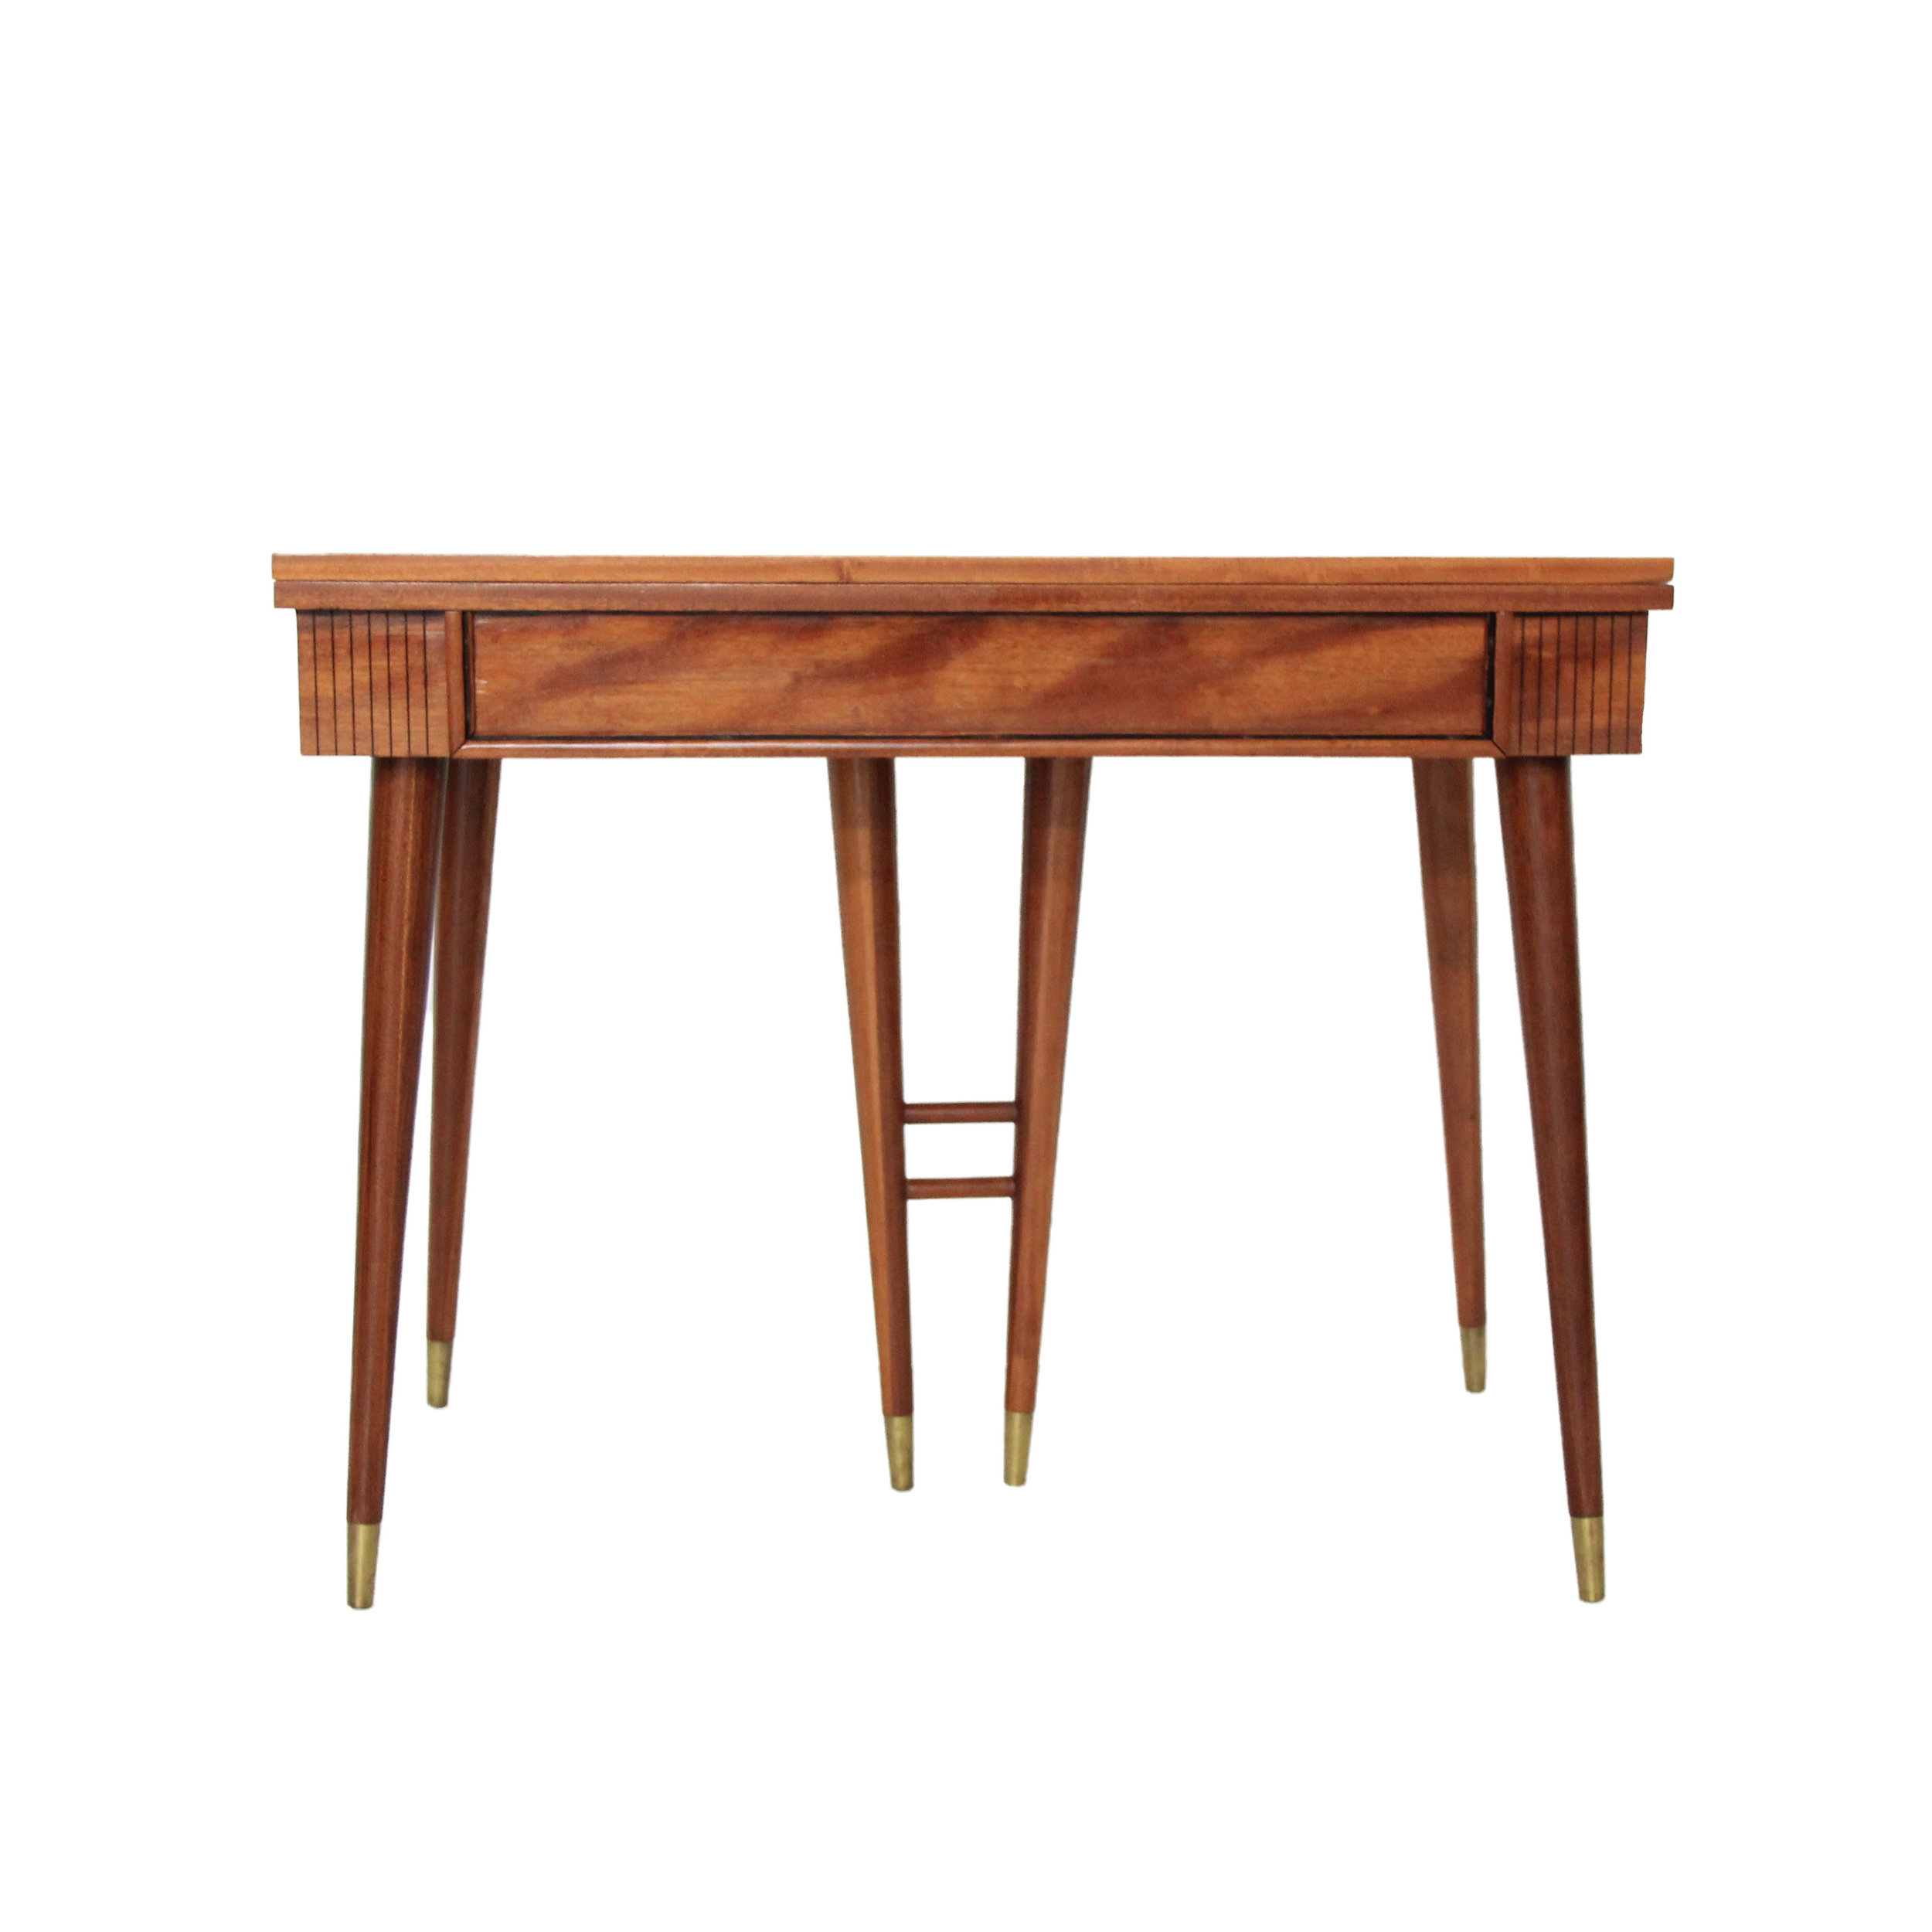 Vintage Mid Century Modern Expending Desk and Dining Table